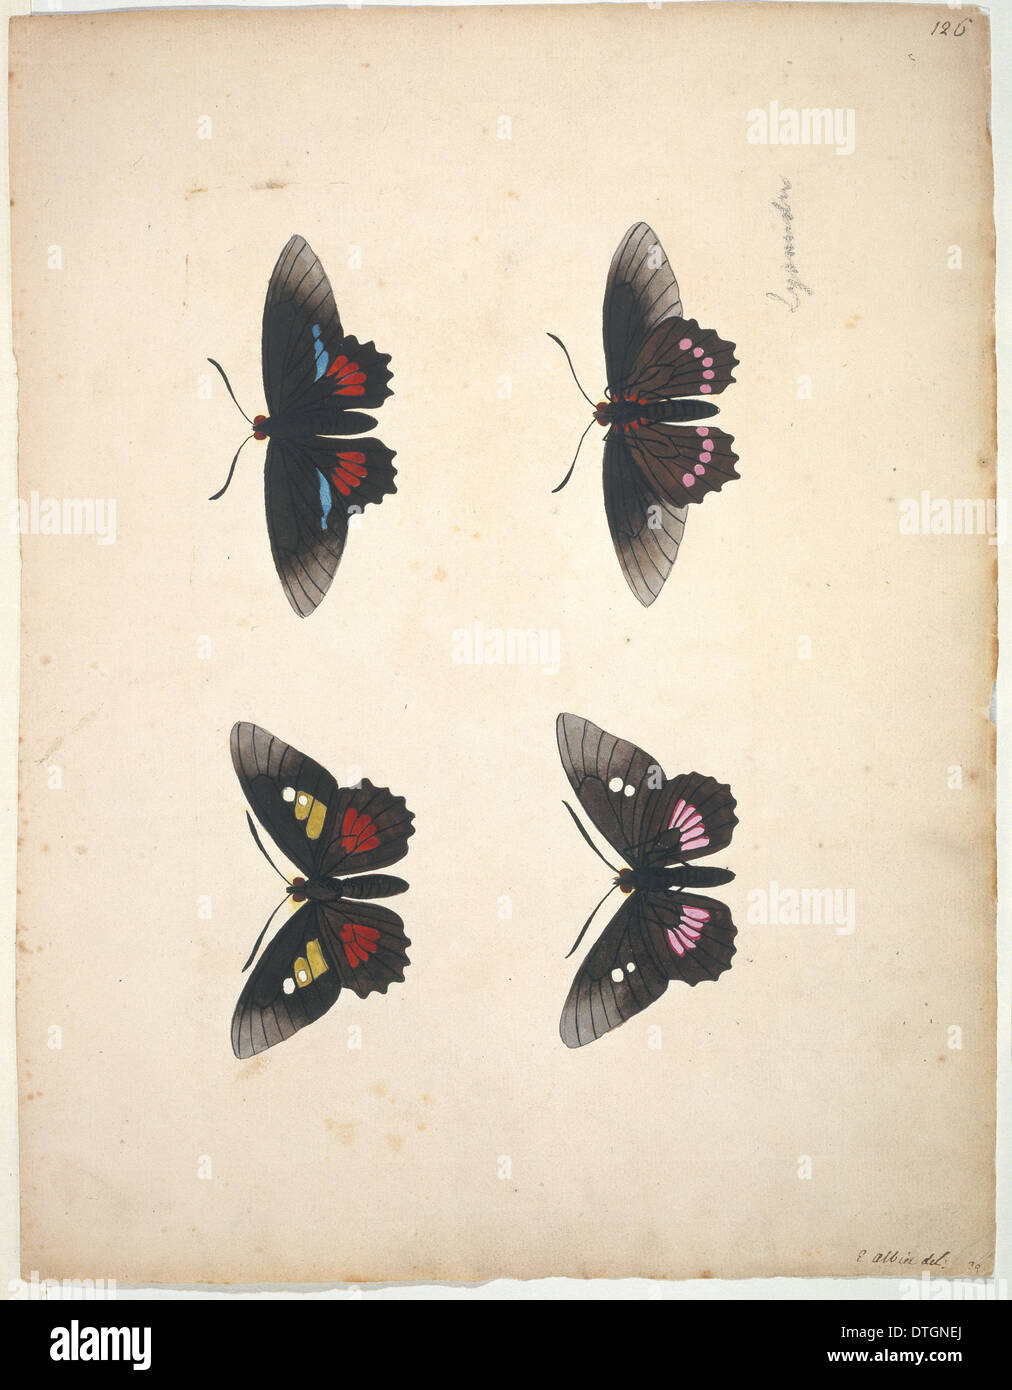 Unpublished lepidoptera watercolour by Eleazar Albin - Stock Image